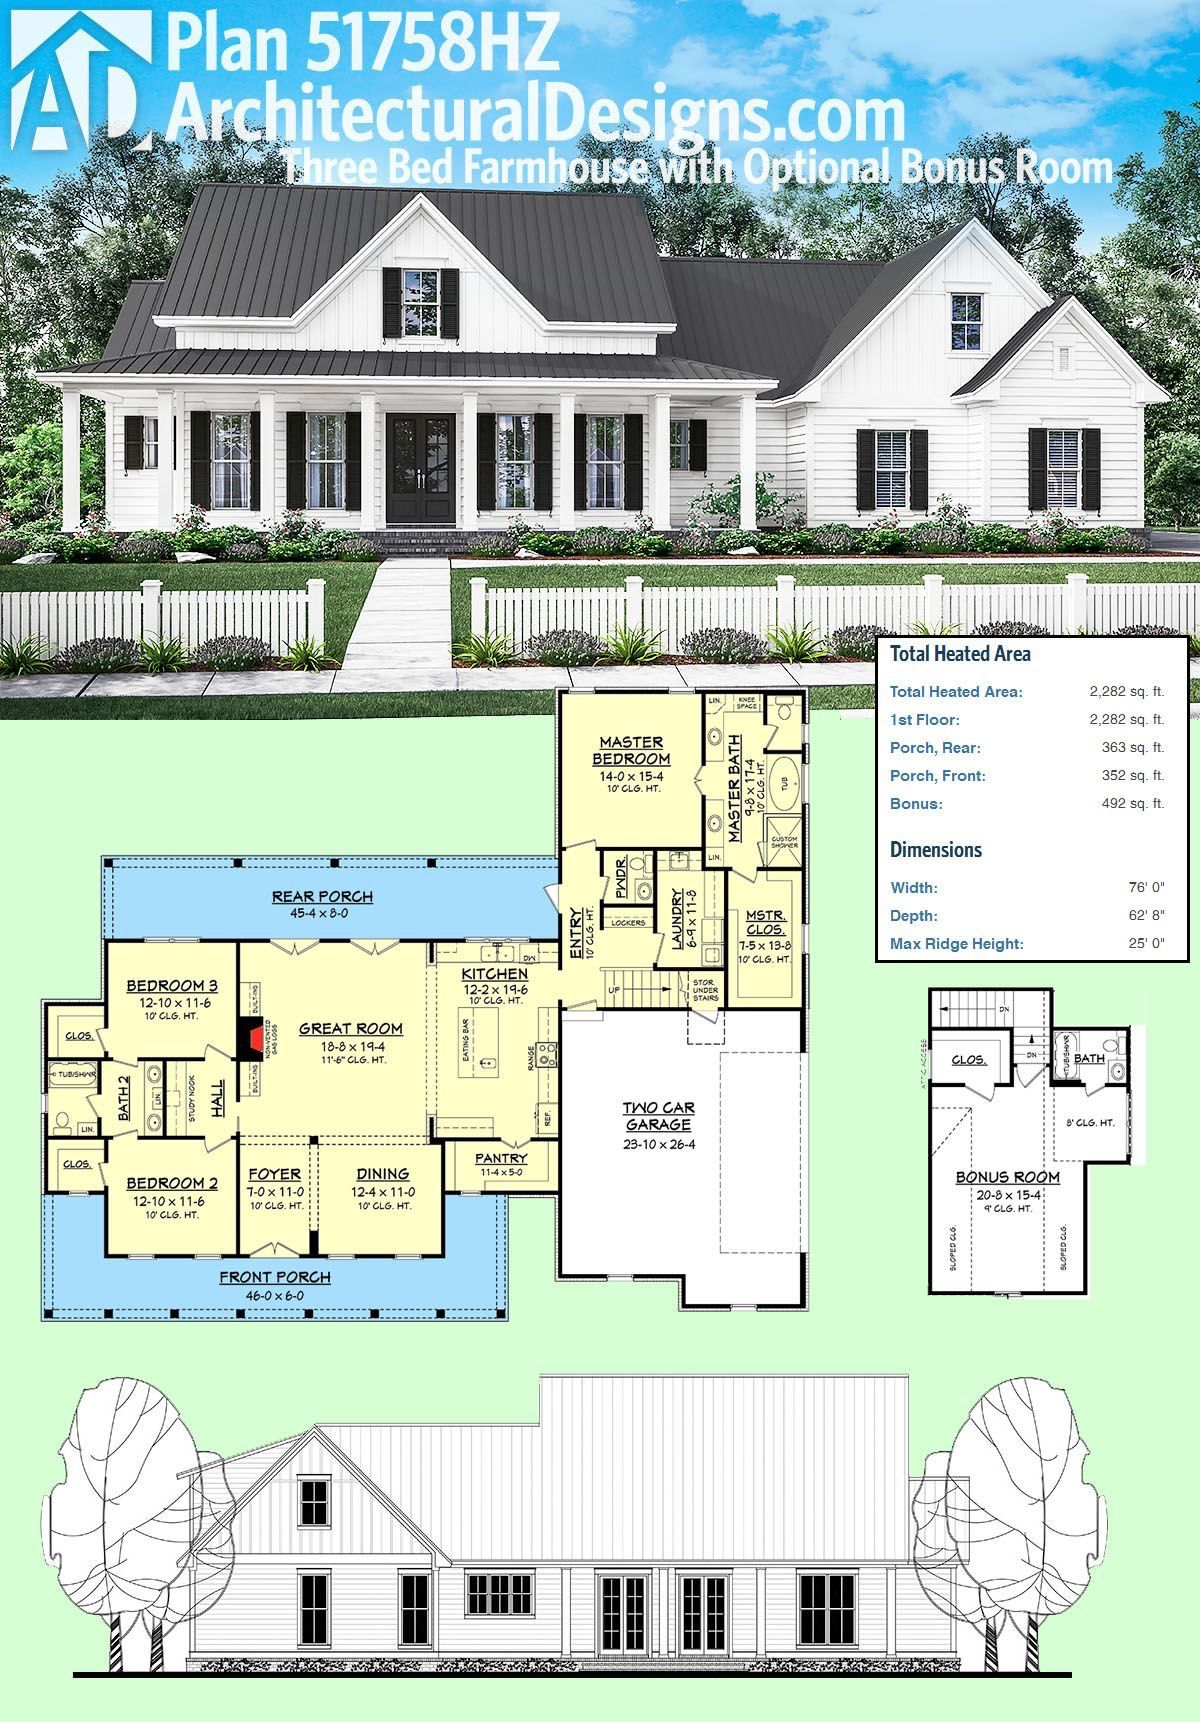 Room Design Plans: Add A 1 Car Garage And In Law Suite On The Outside Of The